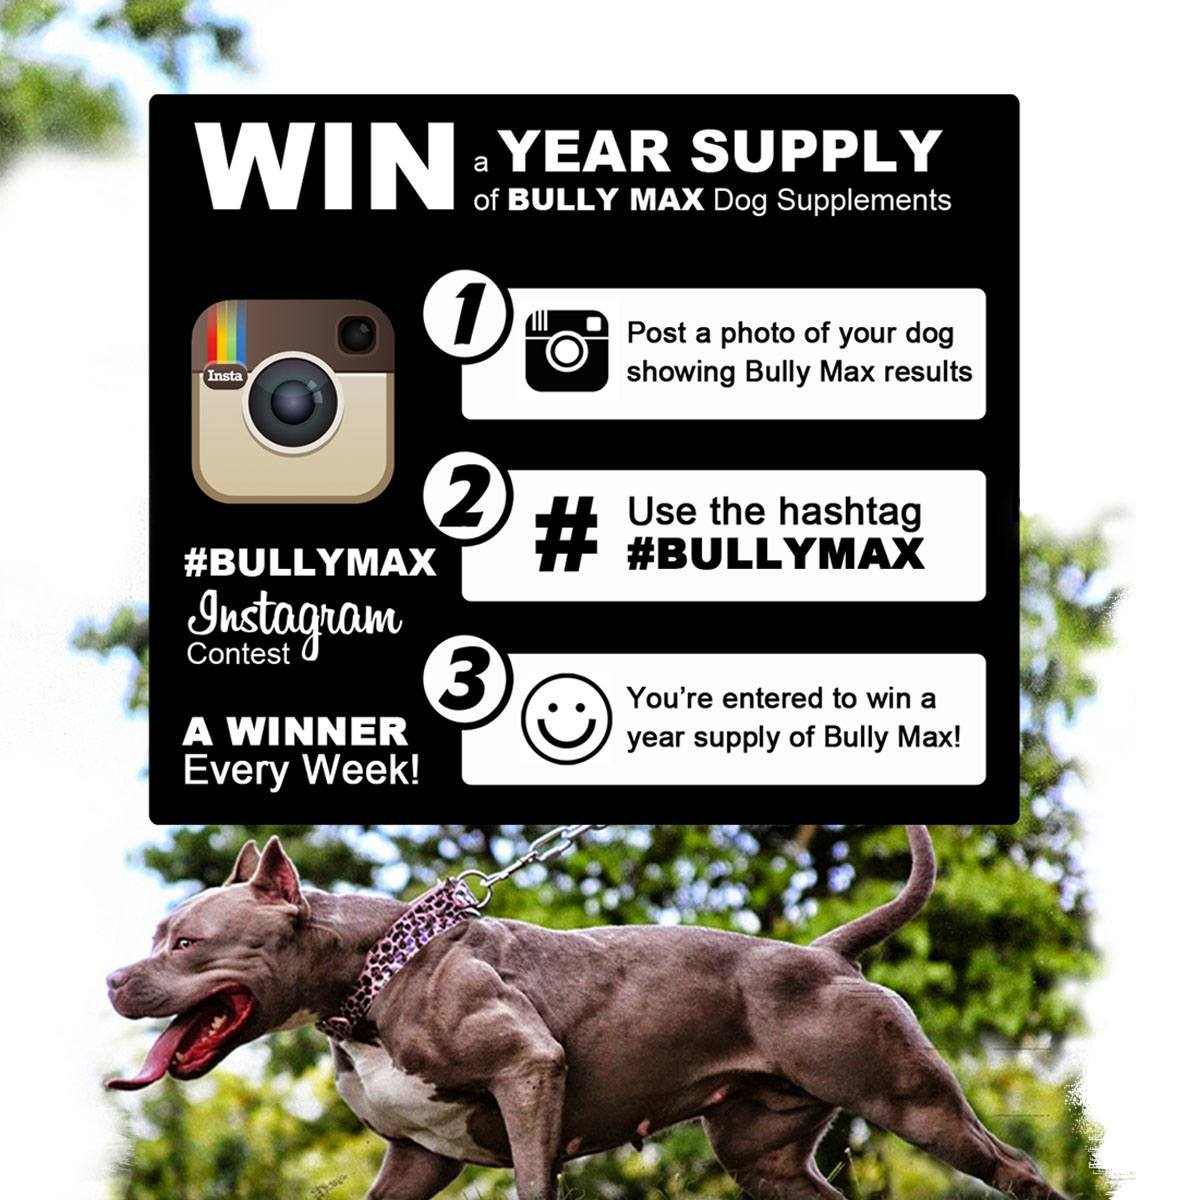 WIN a Year Supply Of Bully Max